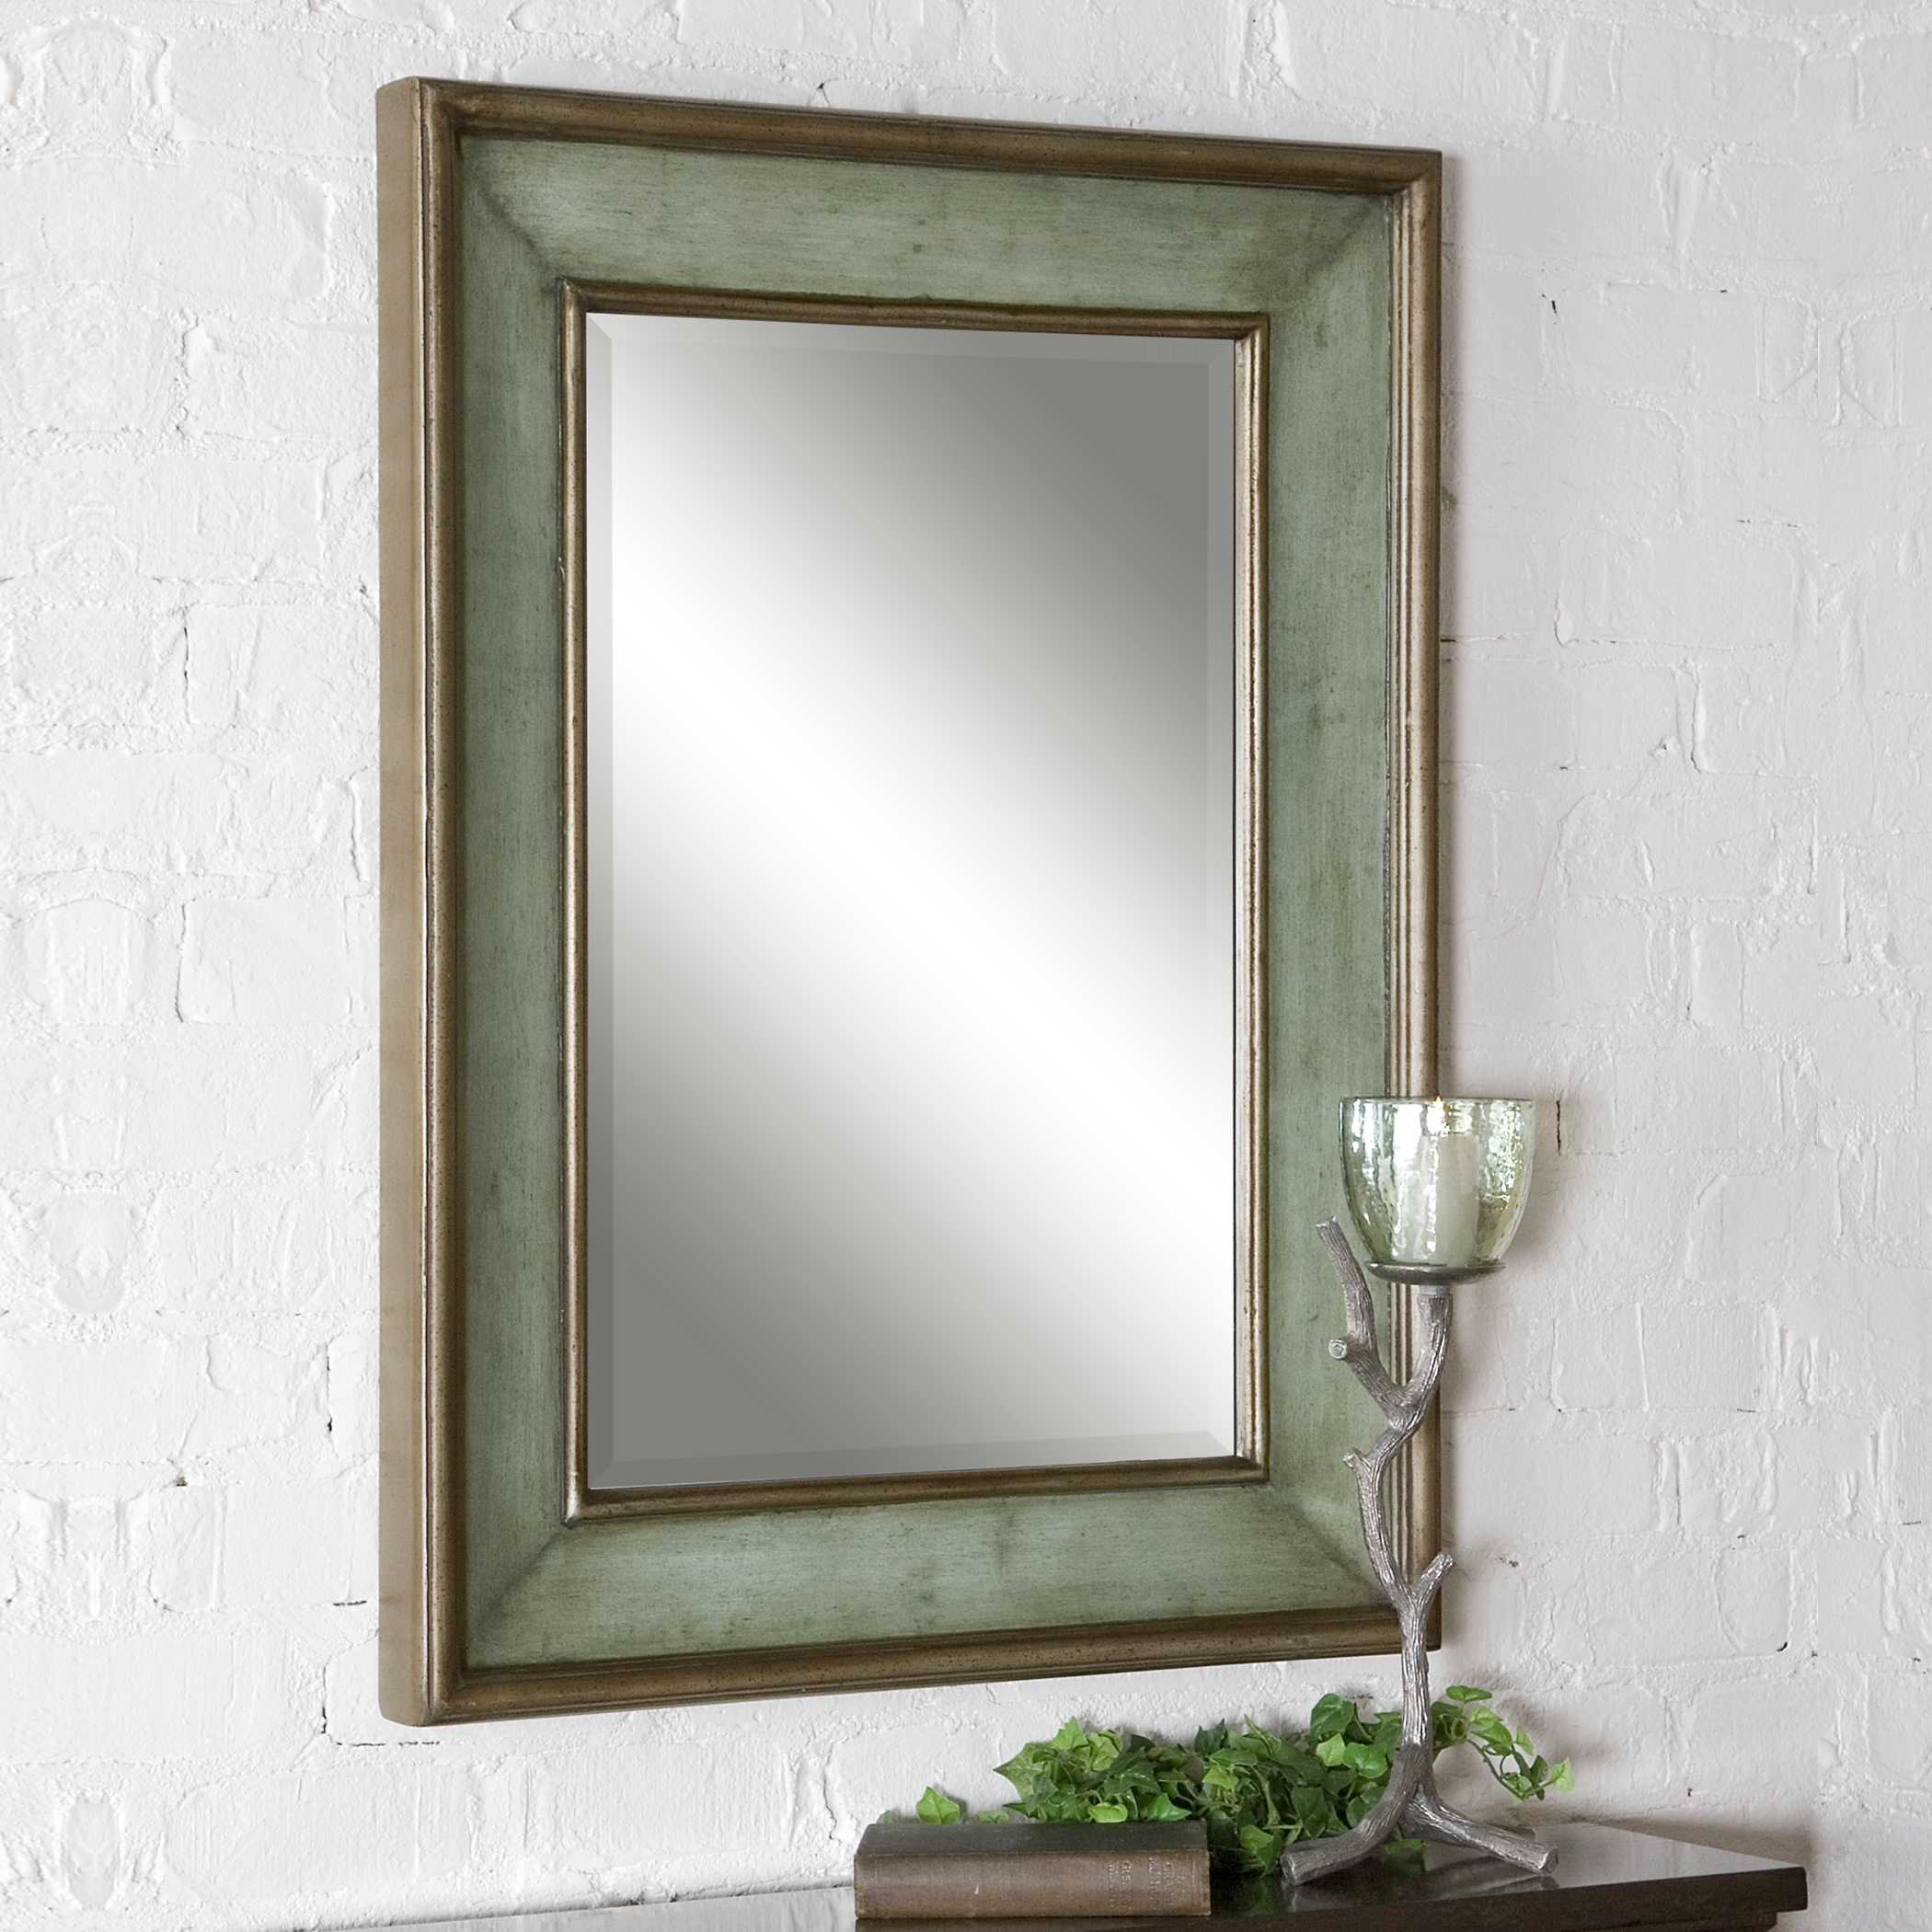 Details About Beach House Rubbed Blue Green Beveled Wall Mirror Large 37 Coastal Decor